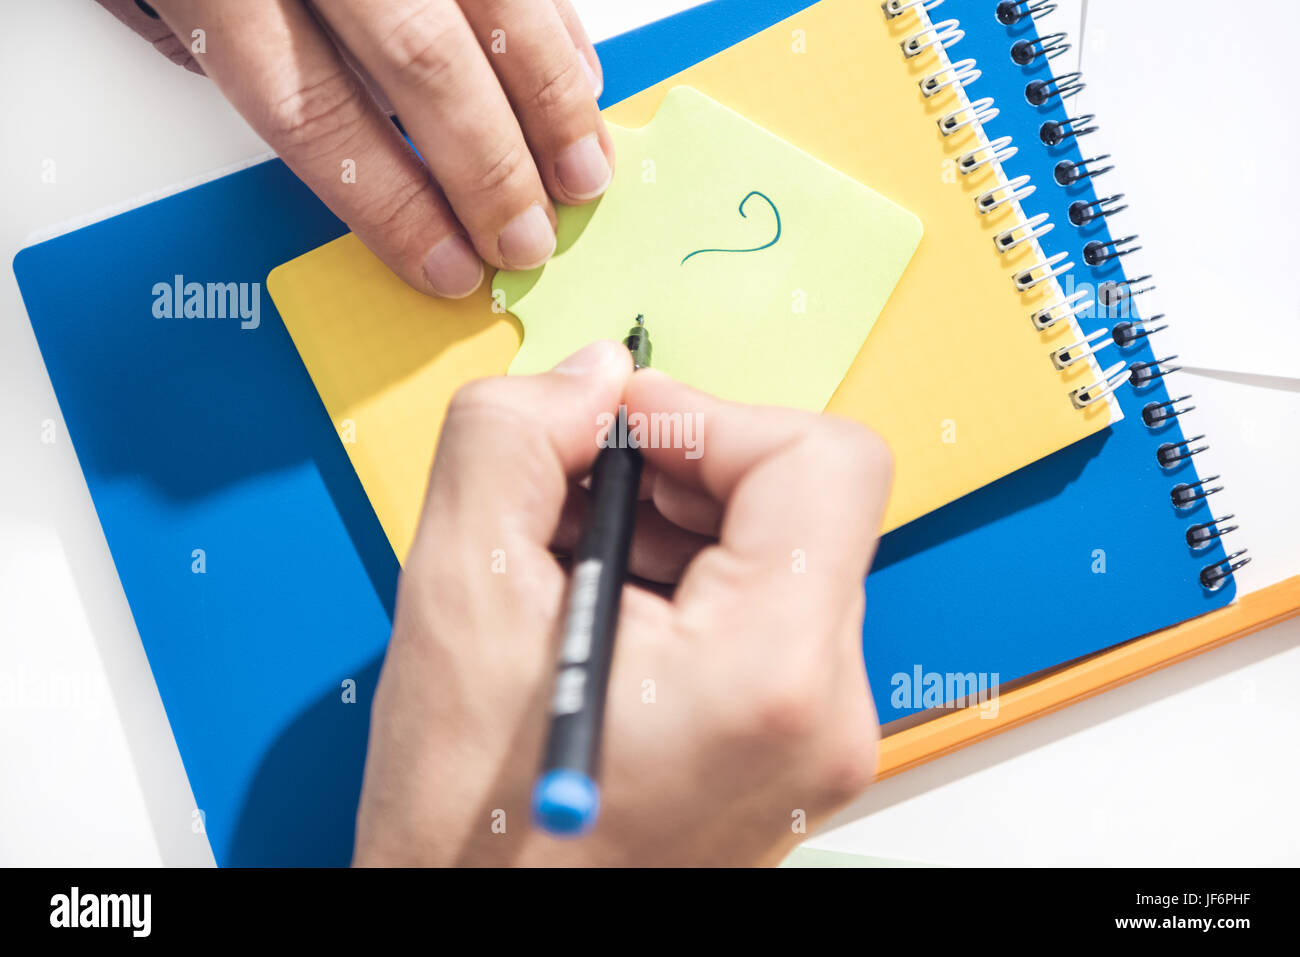 close up of human hands drawing exclamation mark on note with pen, business establishment - Stock Image